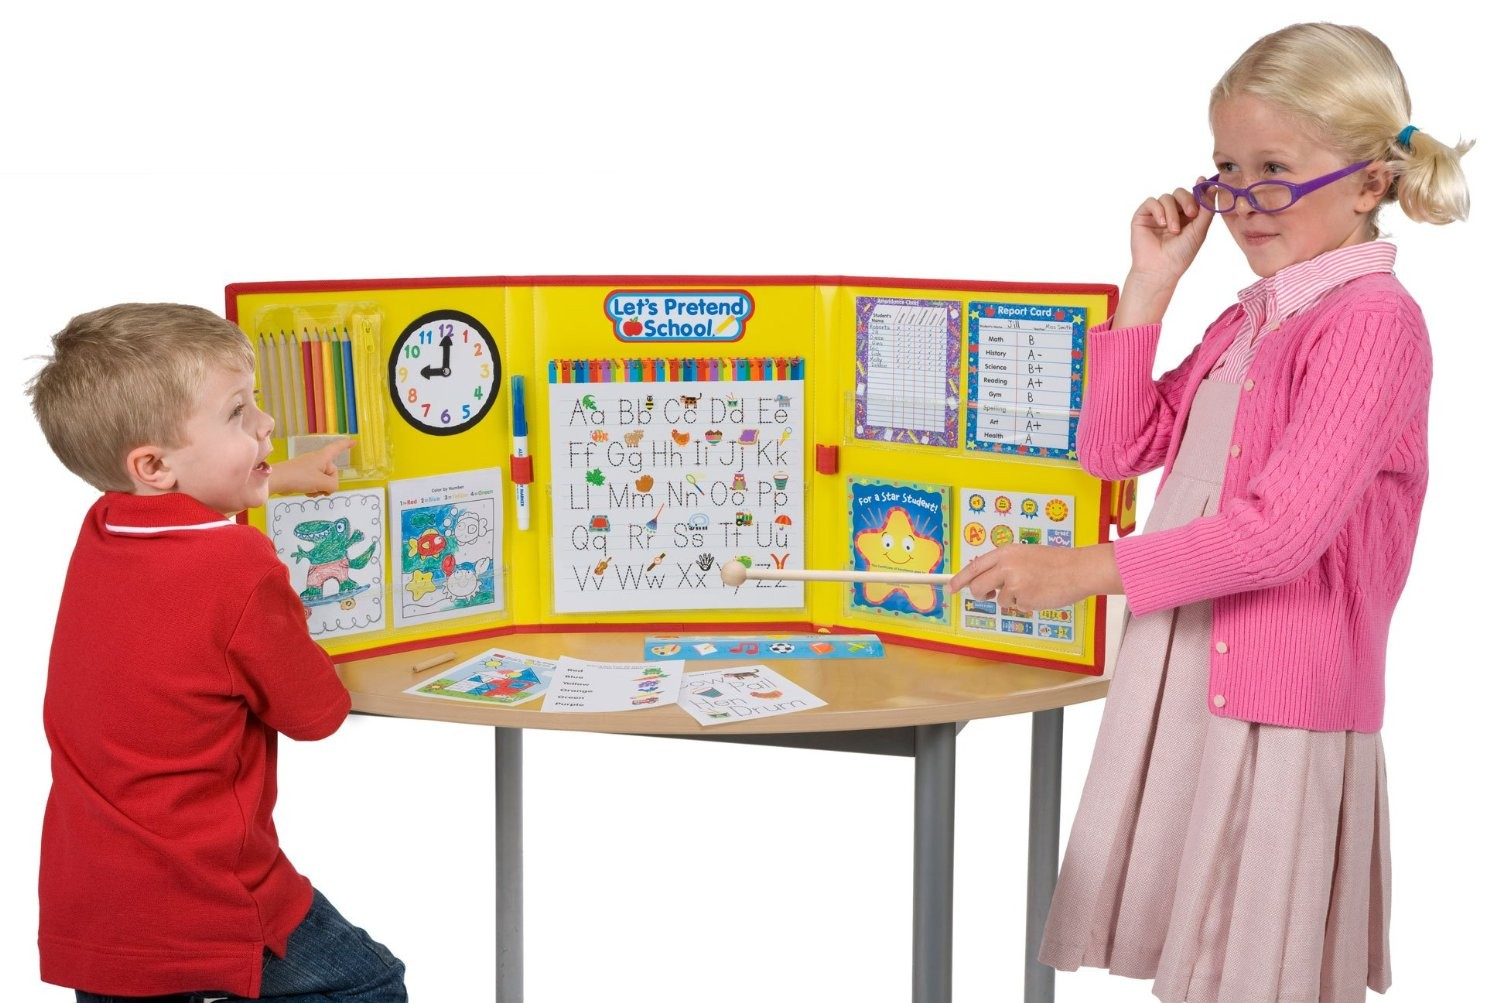 Toys For School : Let s pretend school pc play set educational toys planet